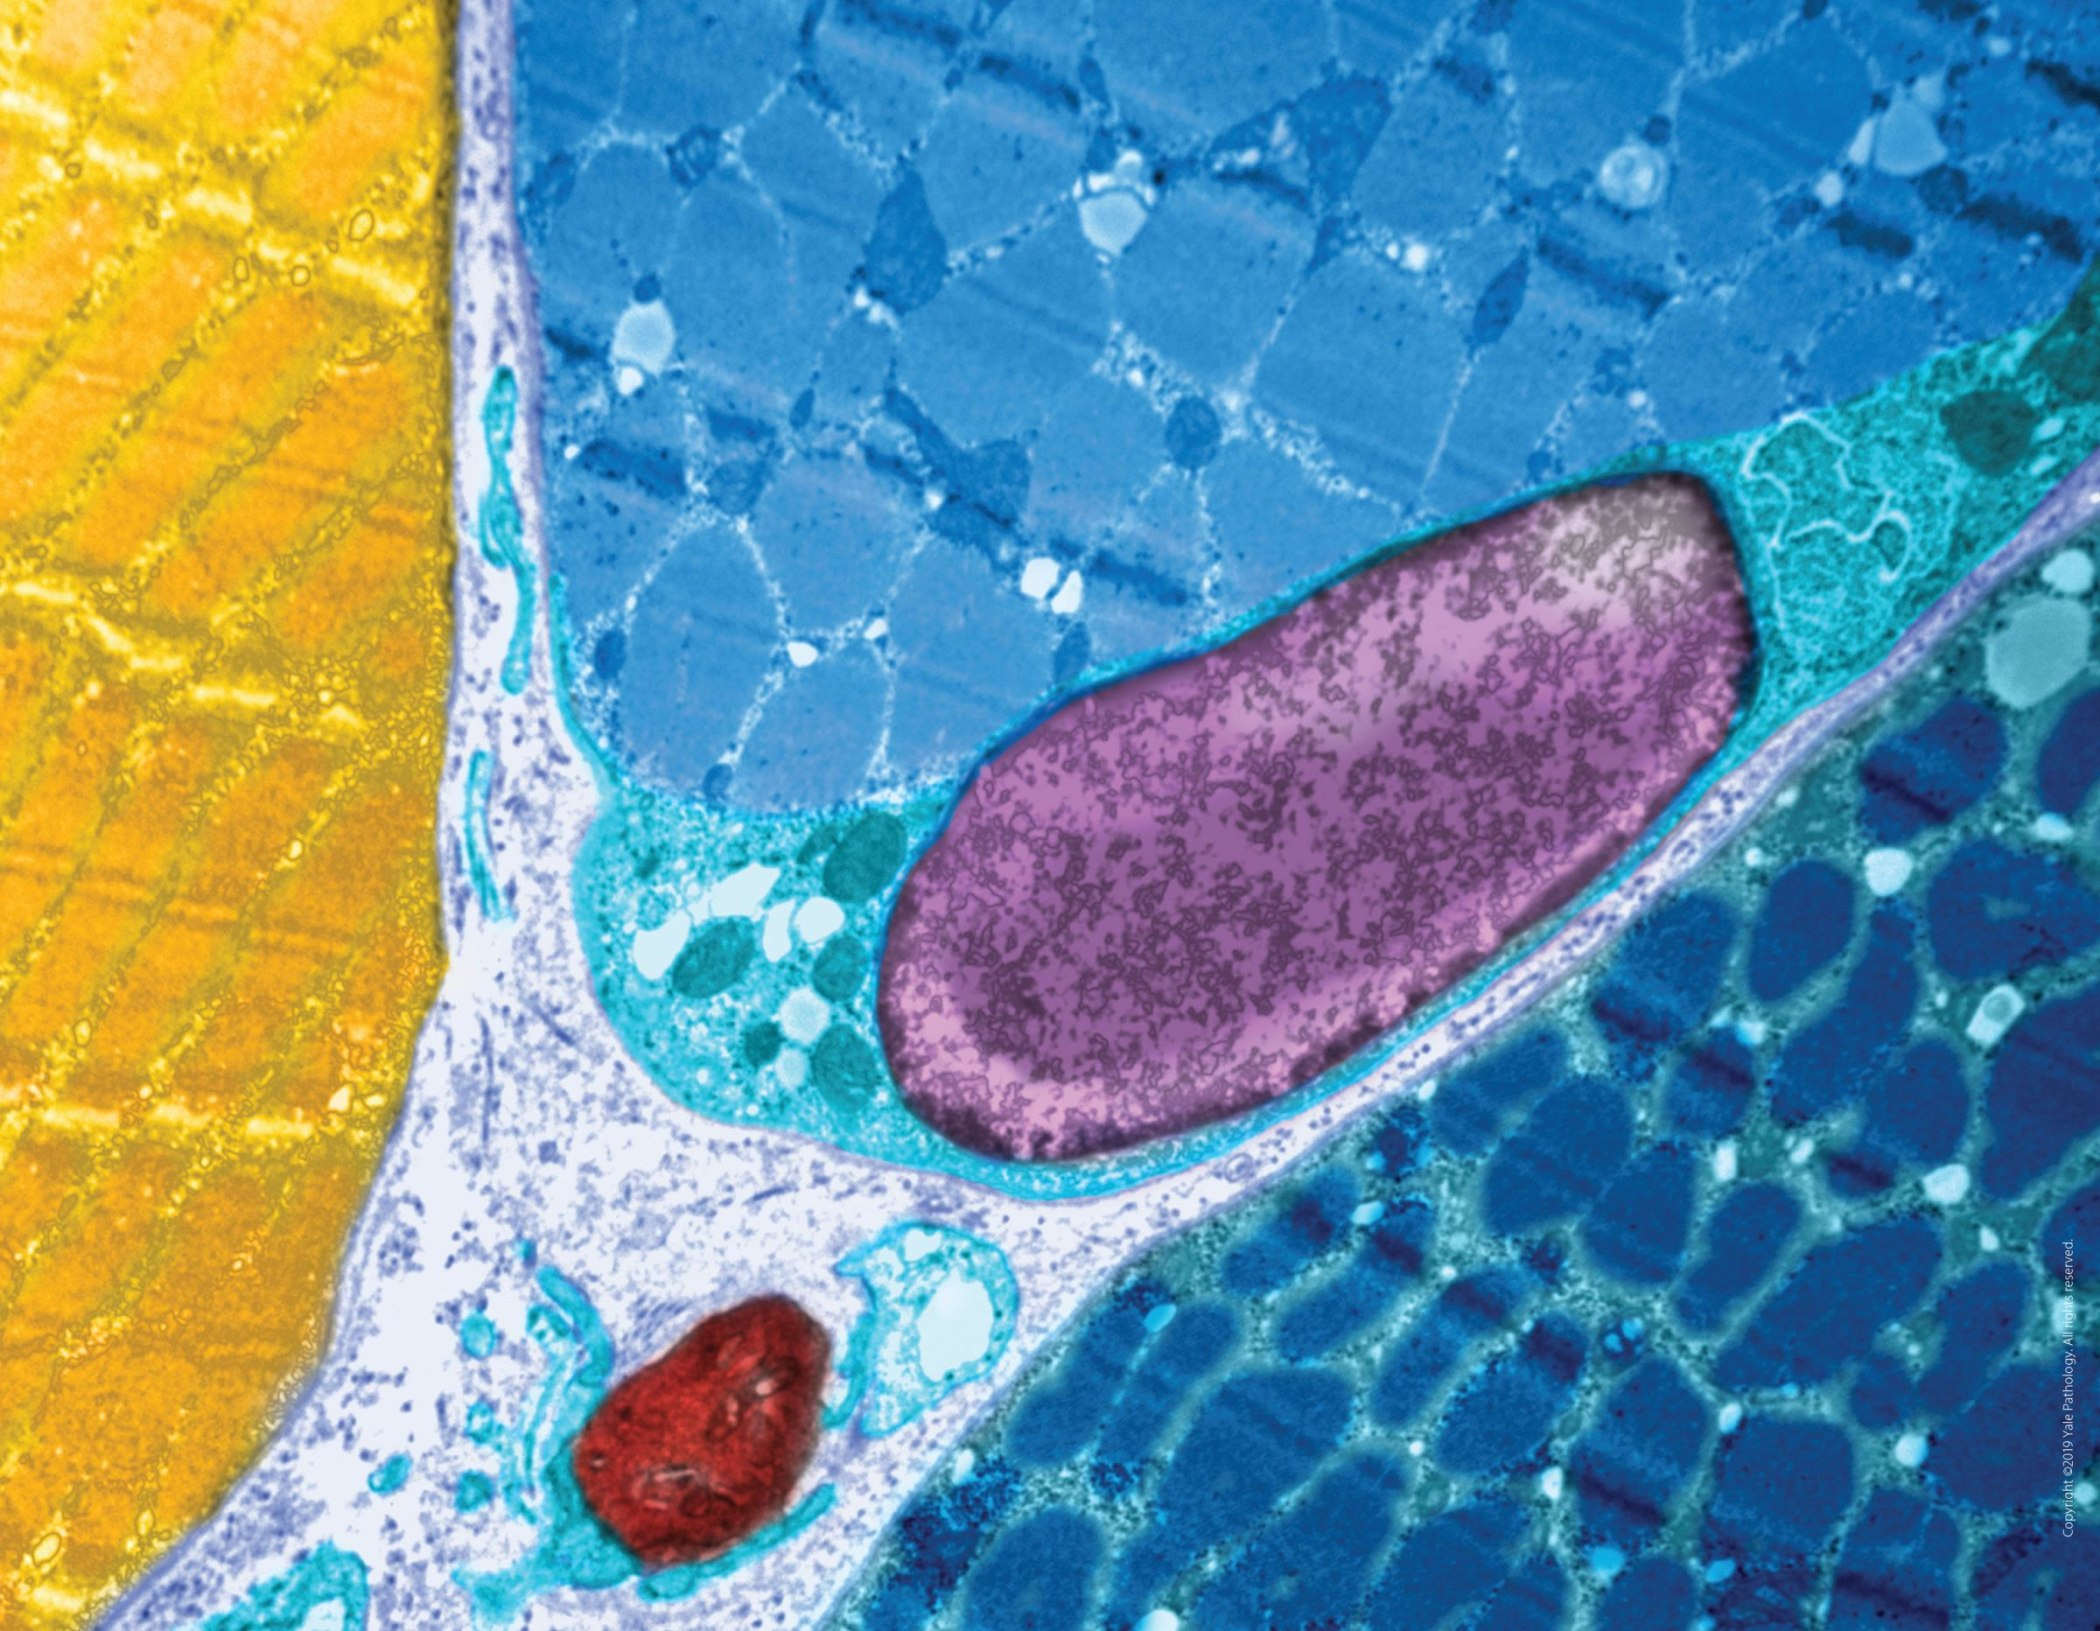 Yale Pathology Labs Calendar 2020 image for July-August